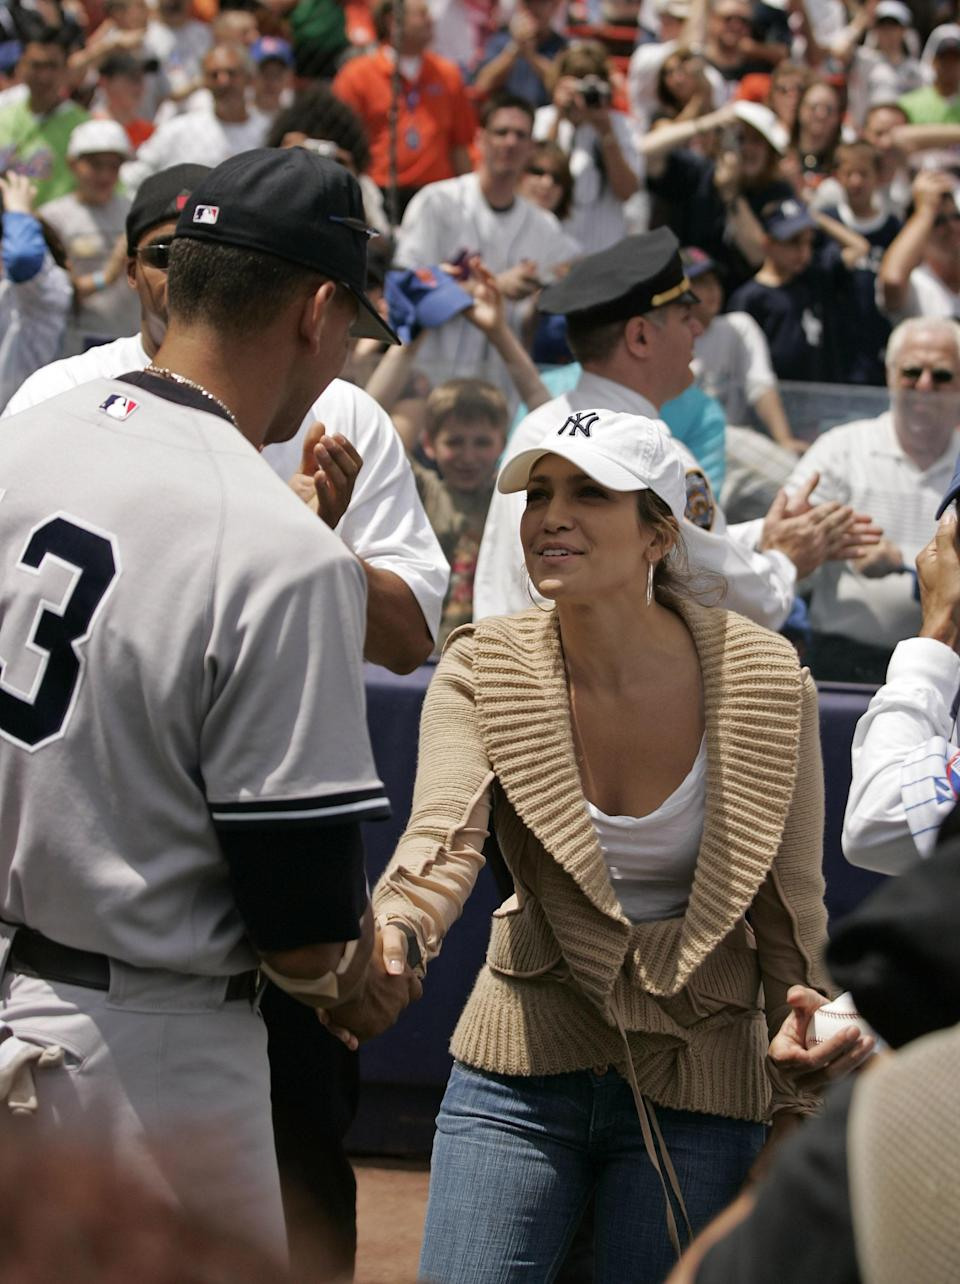 Actress Jennifer Lopez shakes hans with Alex Rodriguez before a subway series game between the New York Mets and the New York Yankees at Shea Stadium in Queens, New York on Saturday May 21, 2005. The Mets beat the Yankees 7-1. (Photo by Mike Ehrmann/WireImage)